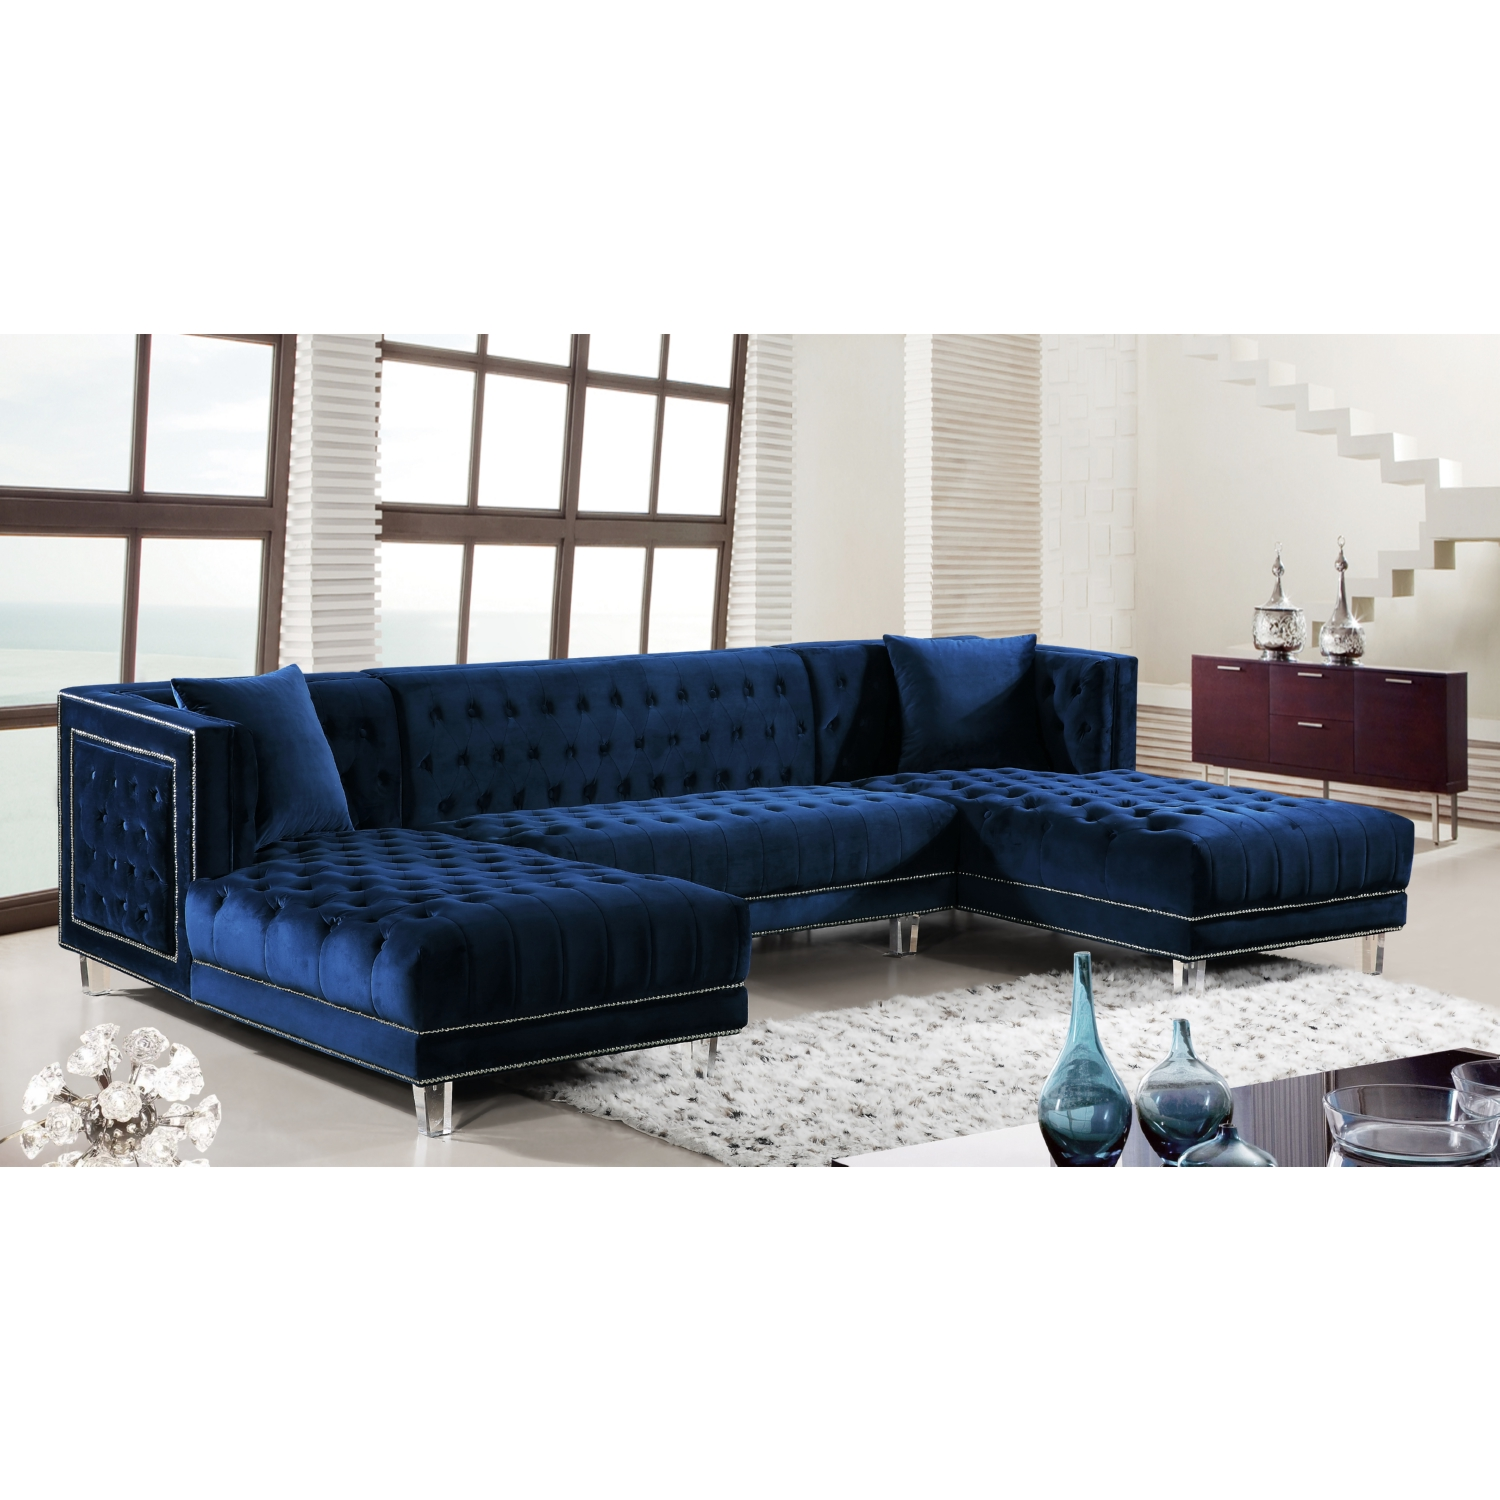 Meridian Furniture 631Navy Sectional Moda 3 Piece Dual Chaise